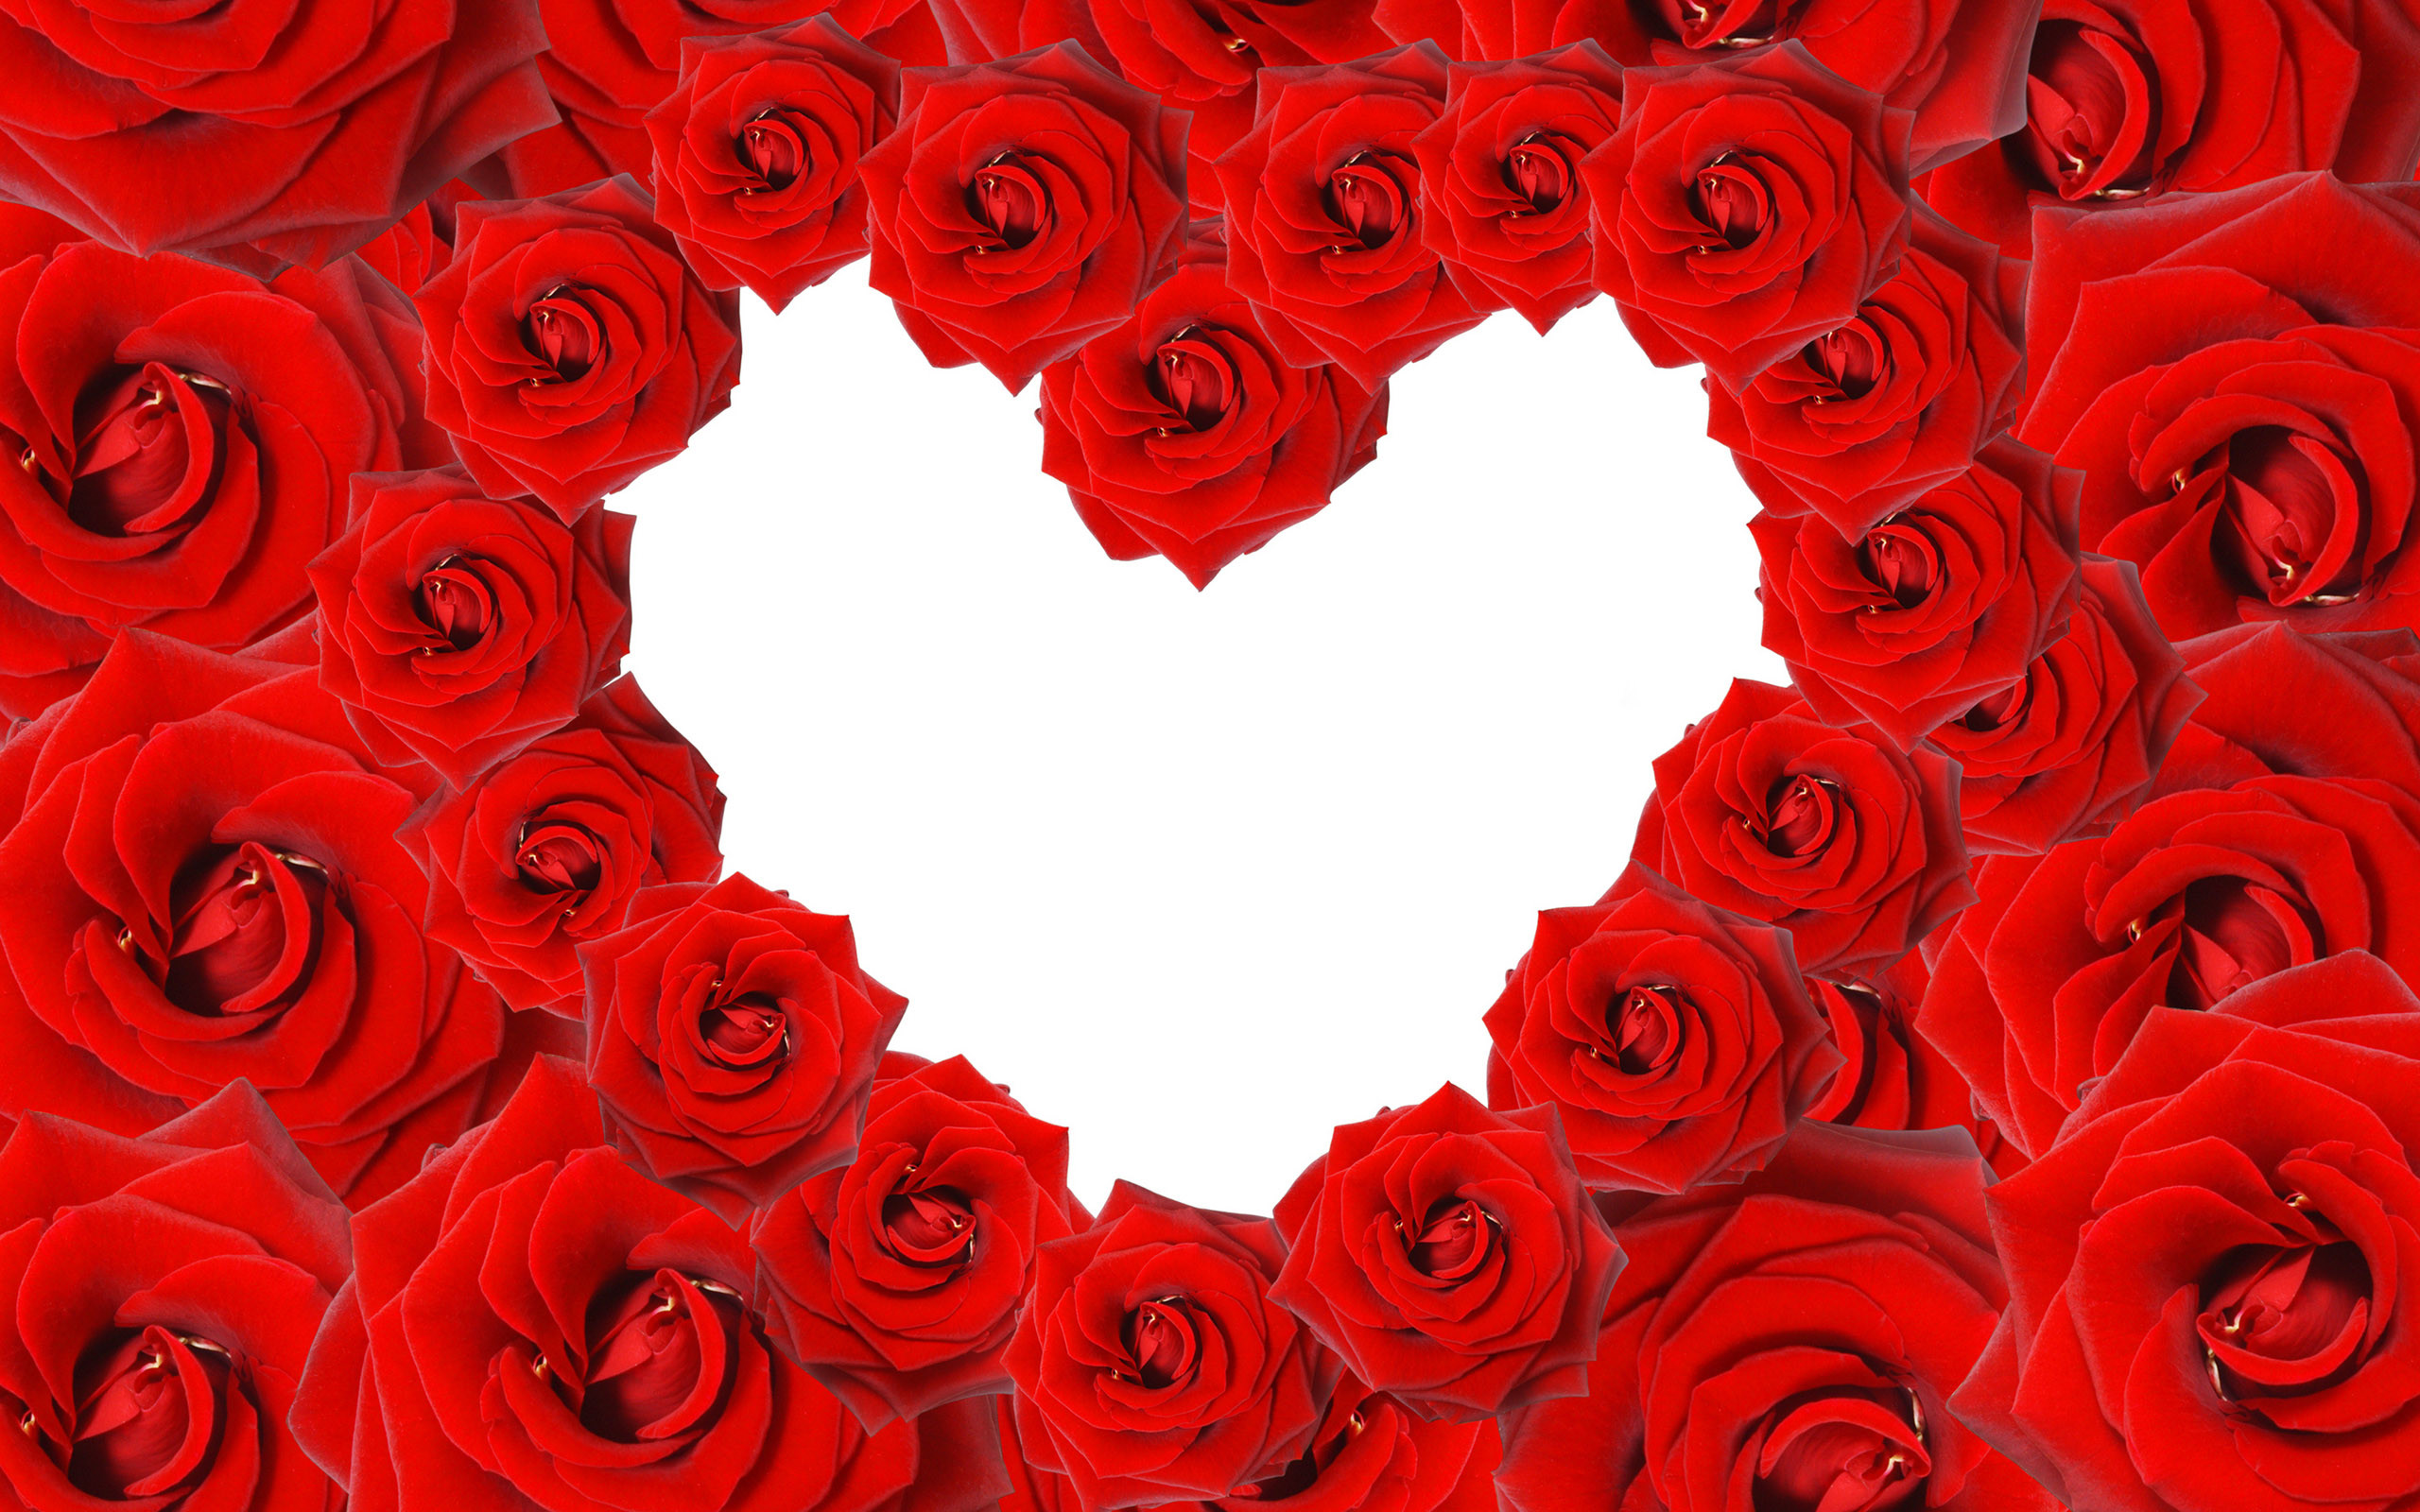 2560x1600 Red Roses Love Heart Wallpapers | HD Wallpapers